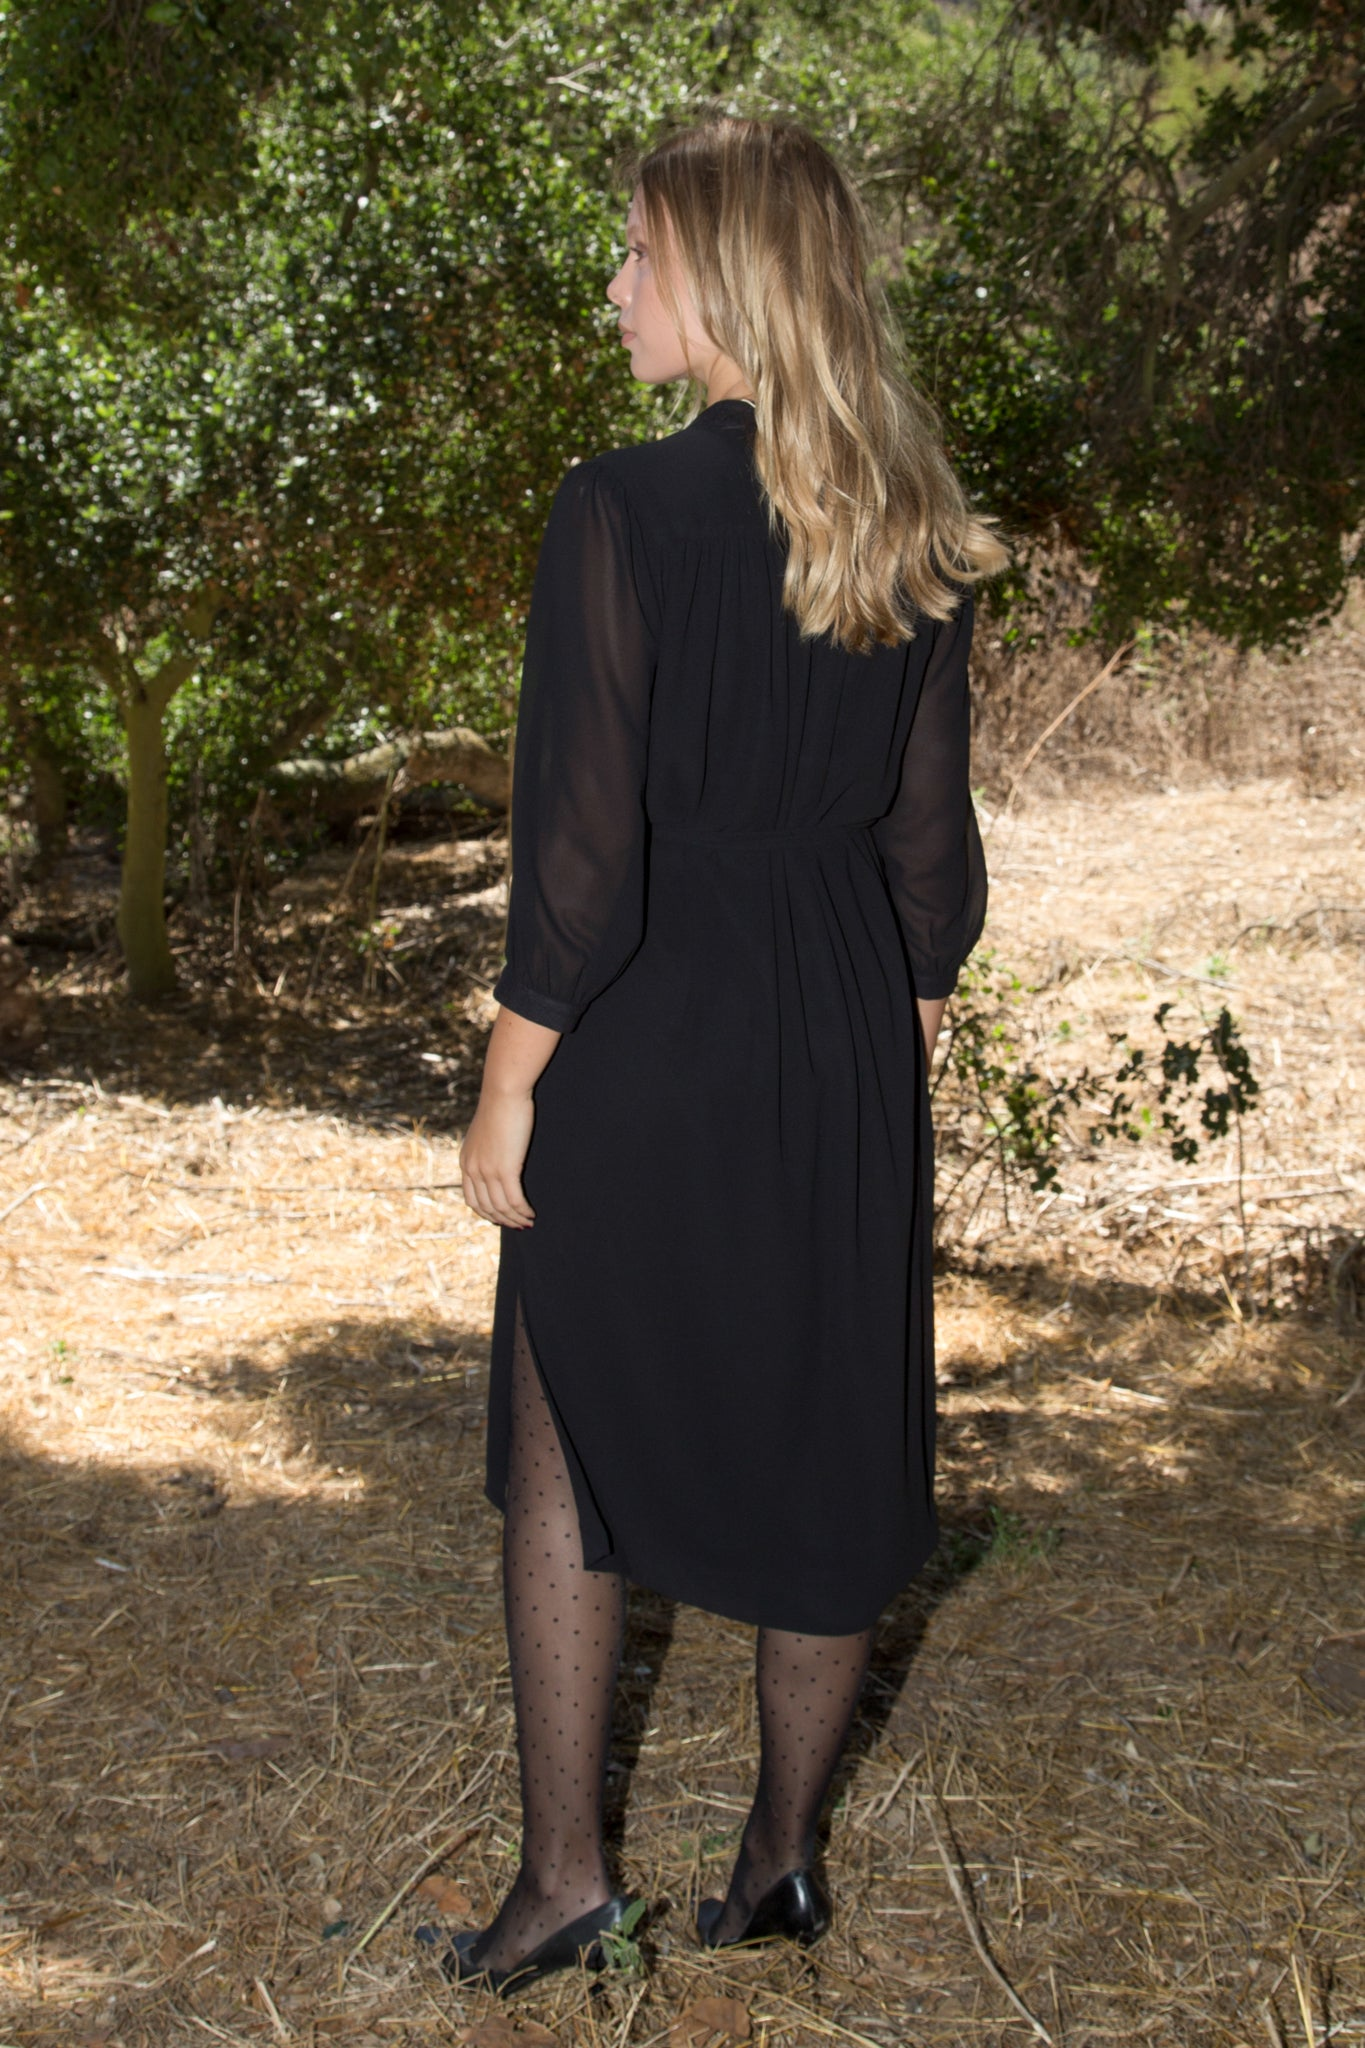 Model wears size Small CHIFFON MARISH DRESS - BLACK by Heidi Merrick made in Downtown Los Angeles